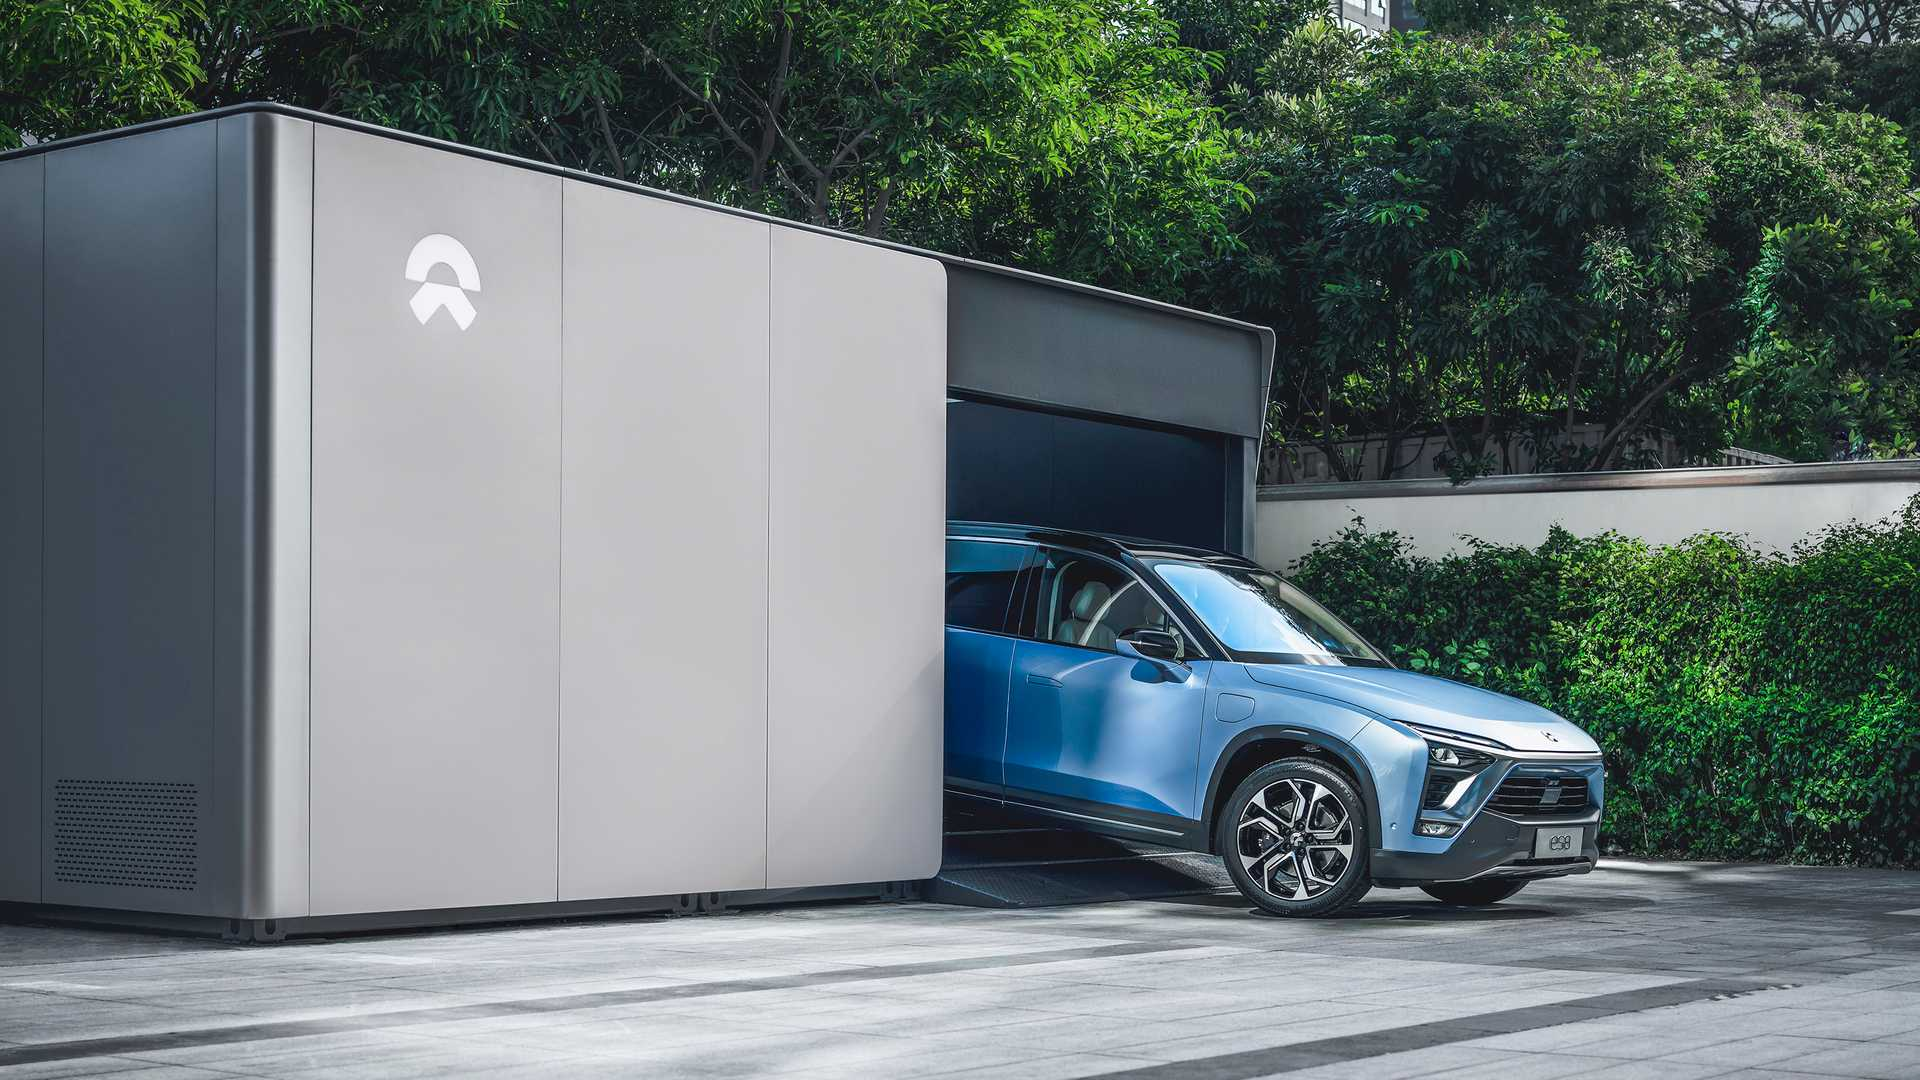 Cumulative Number Of NIO Power Battery Swaps Reaches 500,000